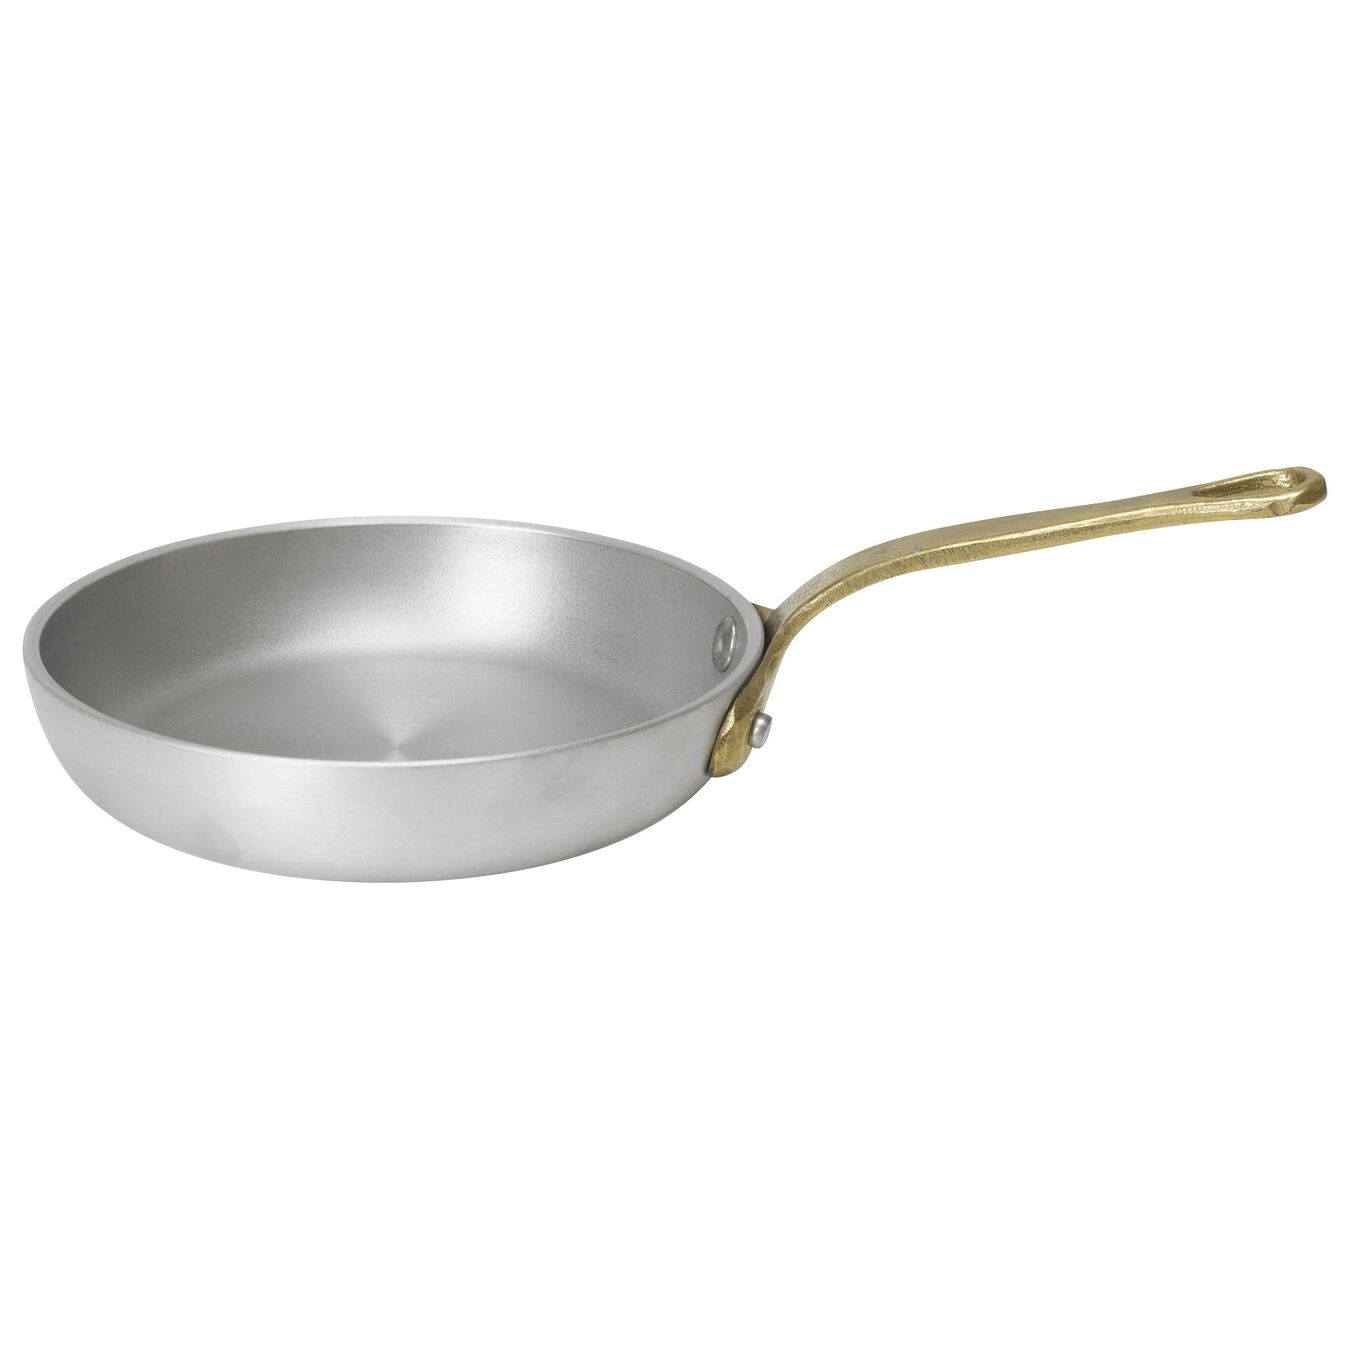 14 cm / 5.5 inch Special Formula Steel Frying pan,,large 1